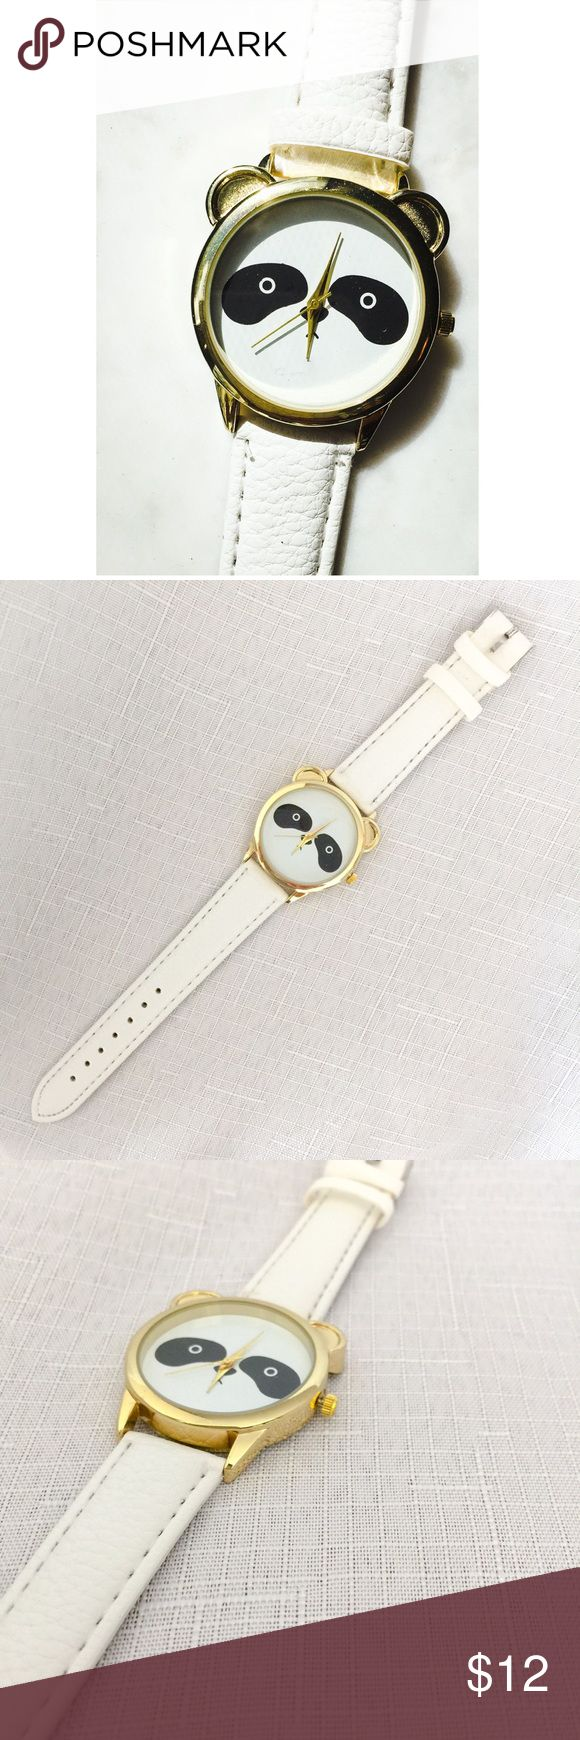 New Cute Panda Watch!! 🐼 New Cute Panda Watch!! 🐼 Fun and adorable, let this little panda tell you the time. White strap with gold colored accents, sure to get lots of compliments; makes a great little gift as well! Accessories Watches